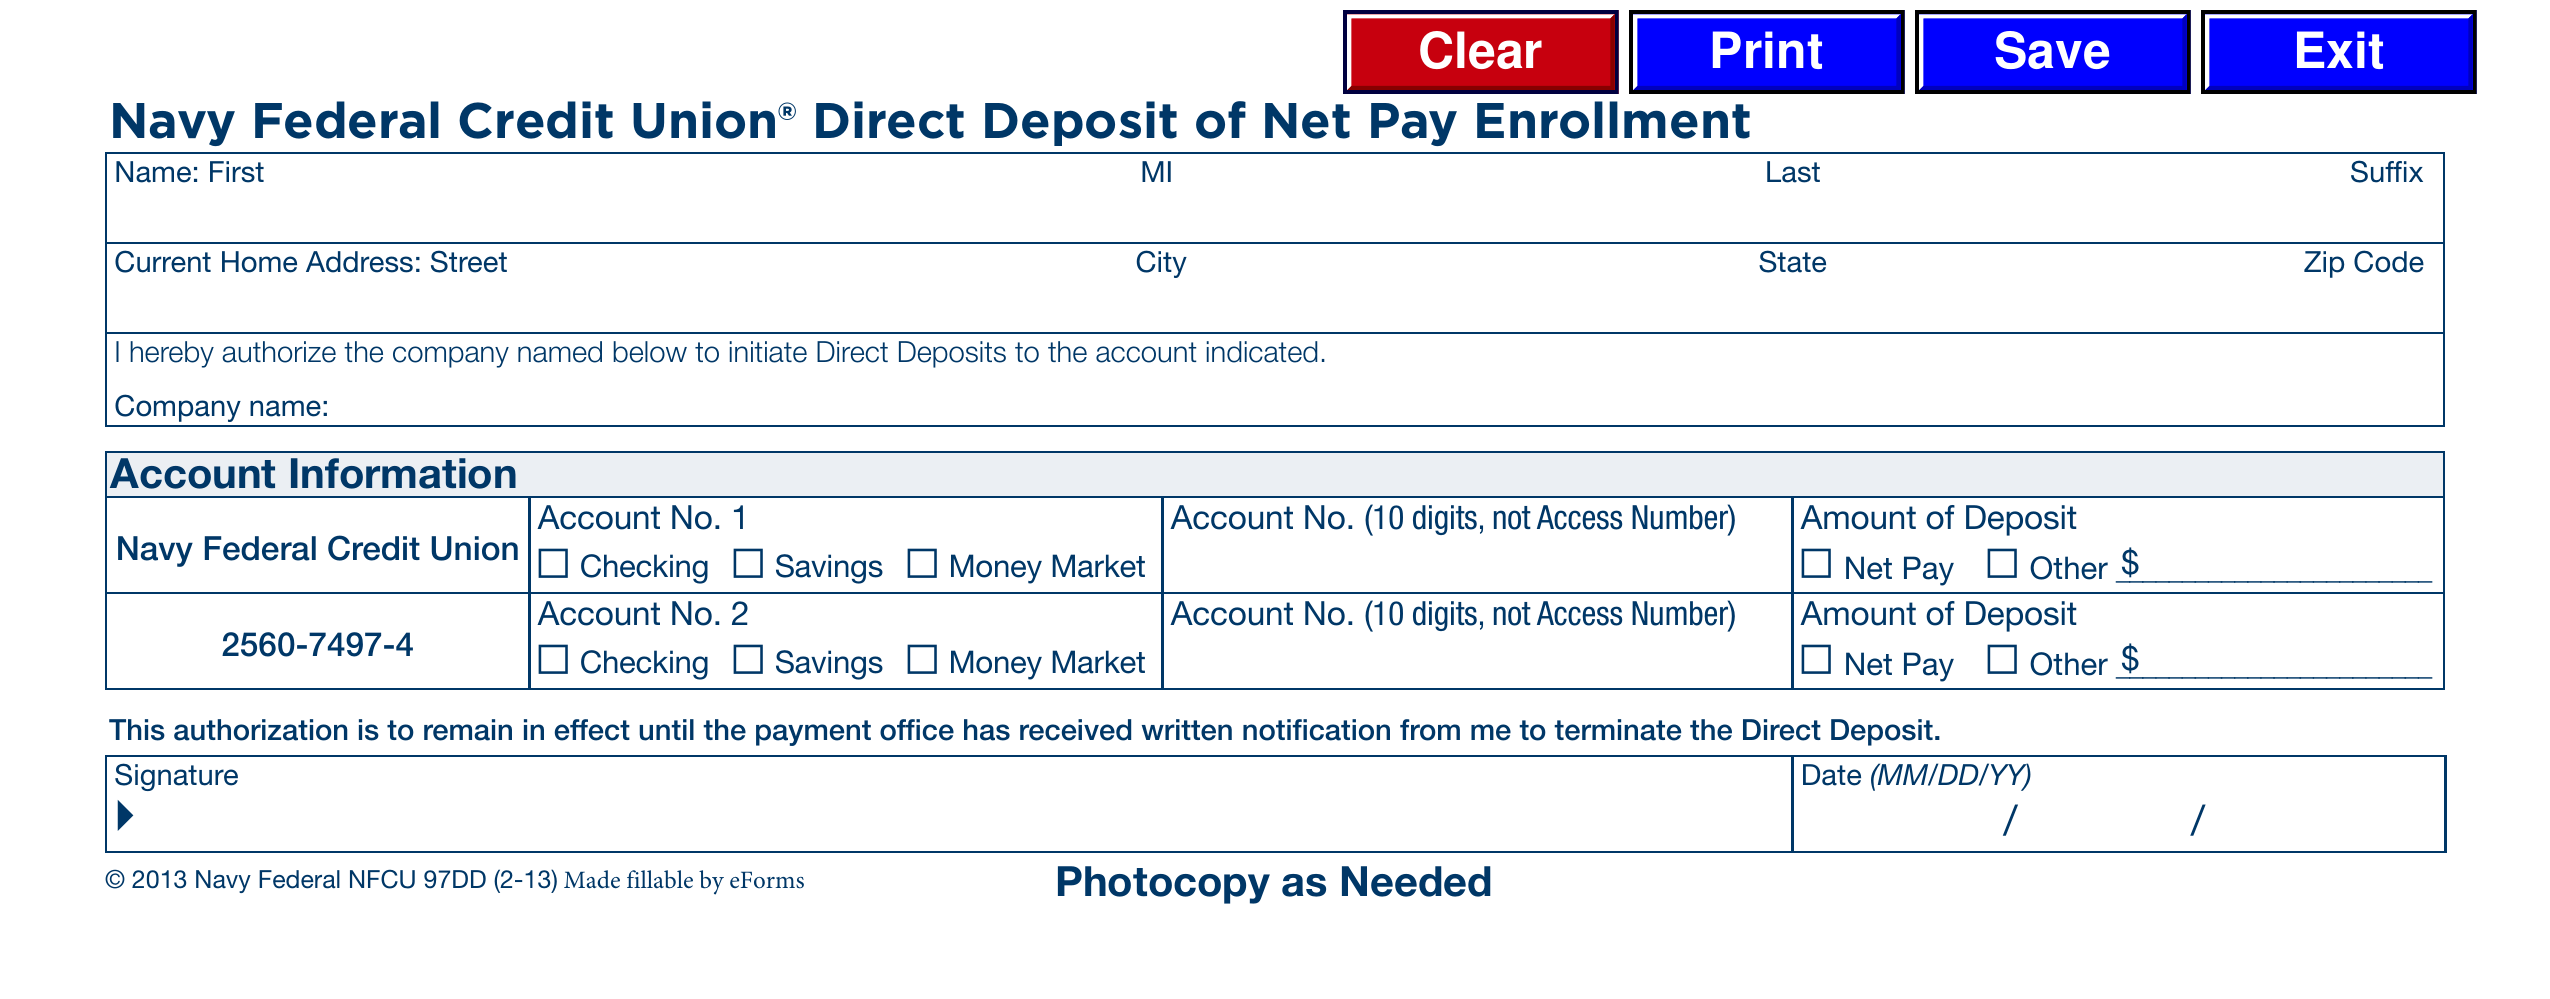 direct deposit form navy federal  Free Navy Federal Credit Union (NFCU) Direct Deposit Form ...